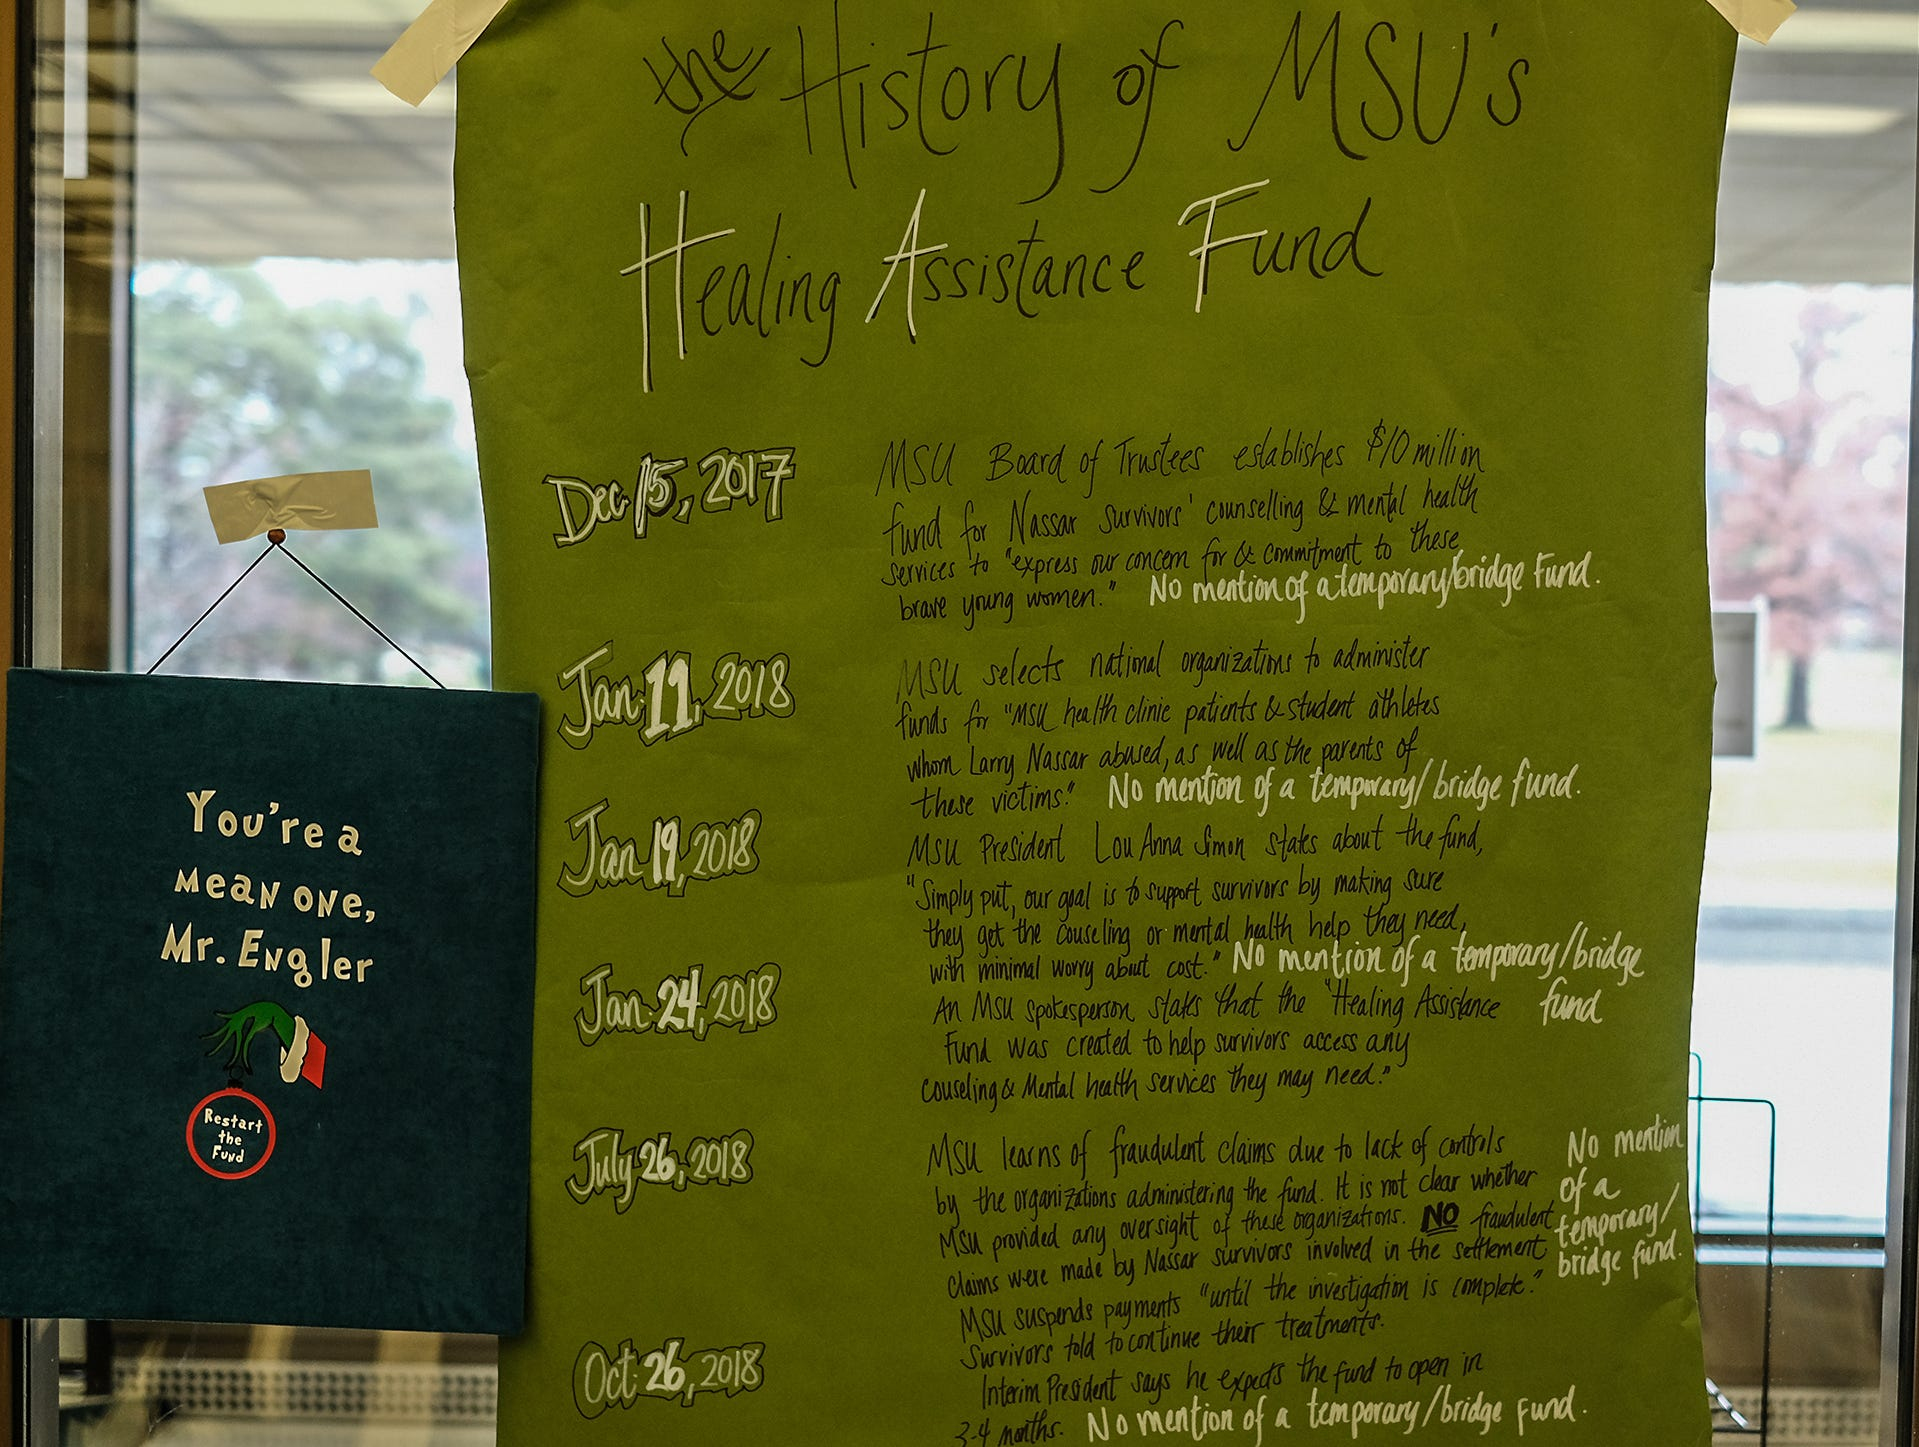 A sign is posted in the window of the MSU Administration Building expressing displeasure at the cancelling of the Healing Assistance Fund set up for victims of Larry Nassar. Friday, Dec. 14, 2018.